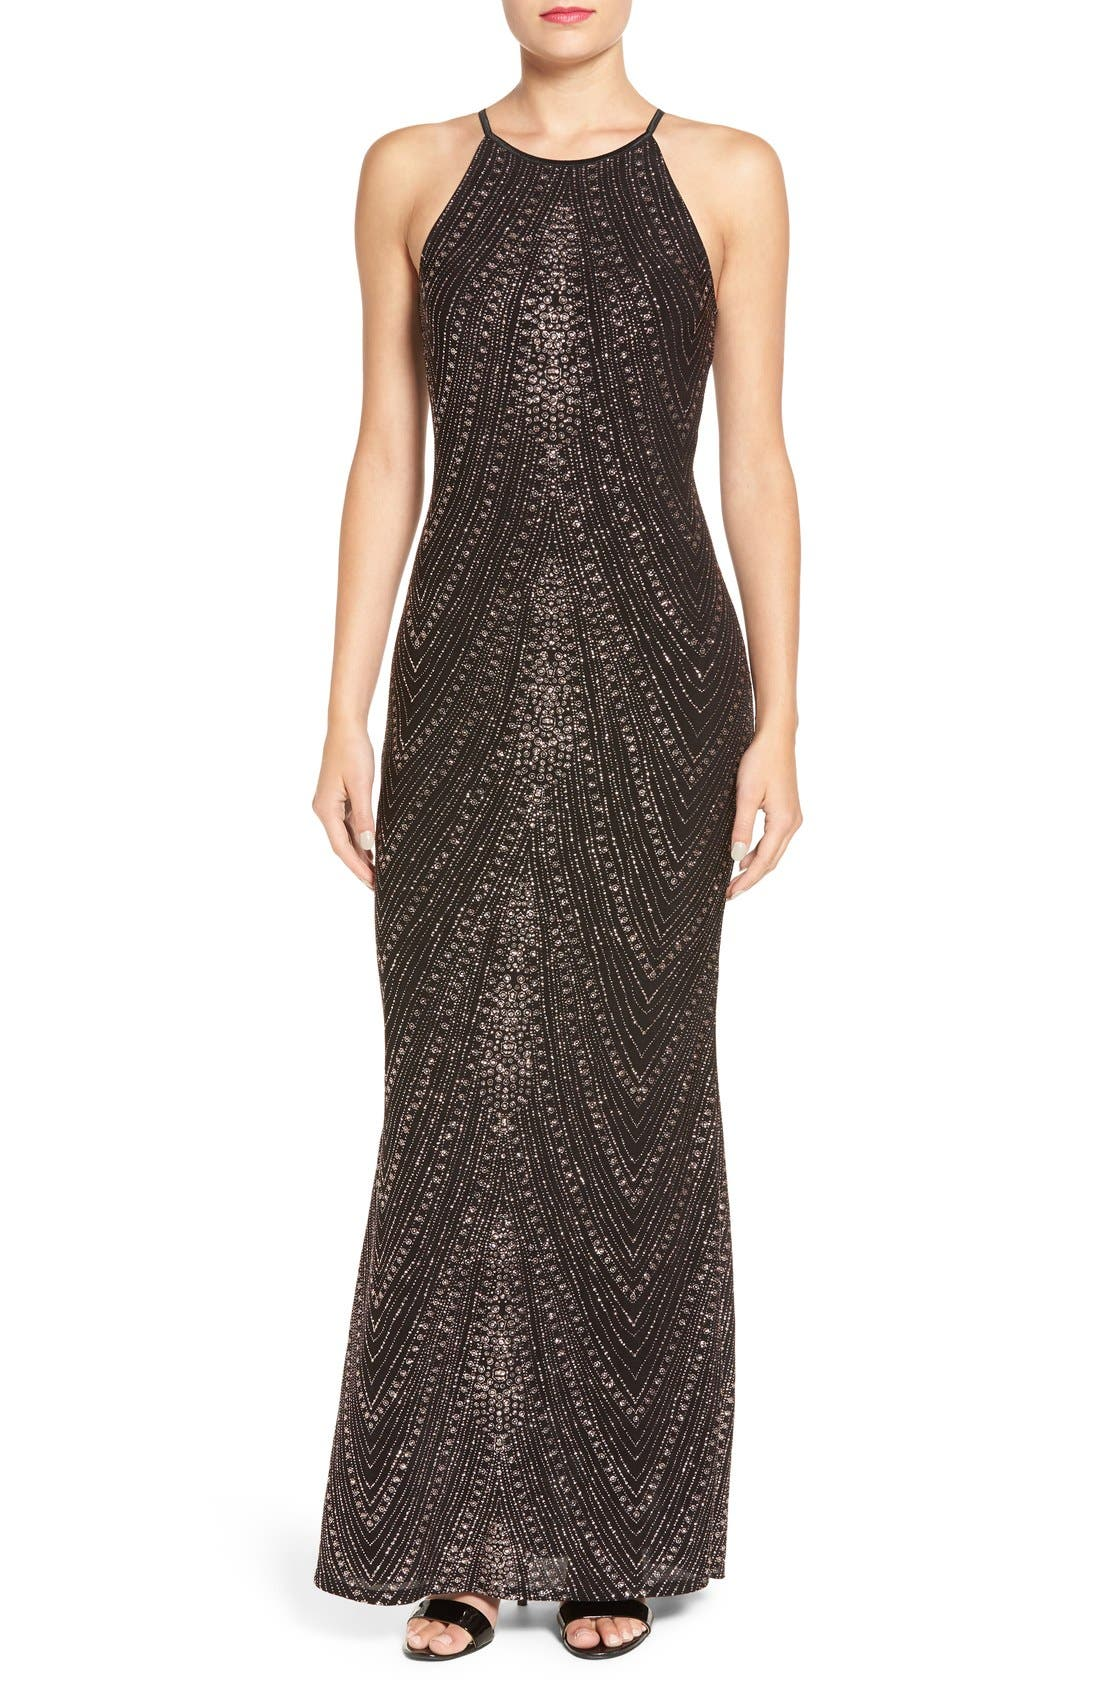 Alternate Image 1 Selected - Jump Apparel High Neck Glitter Gown